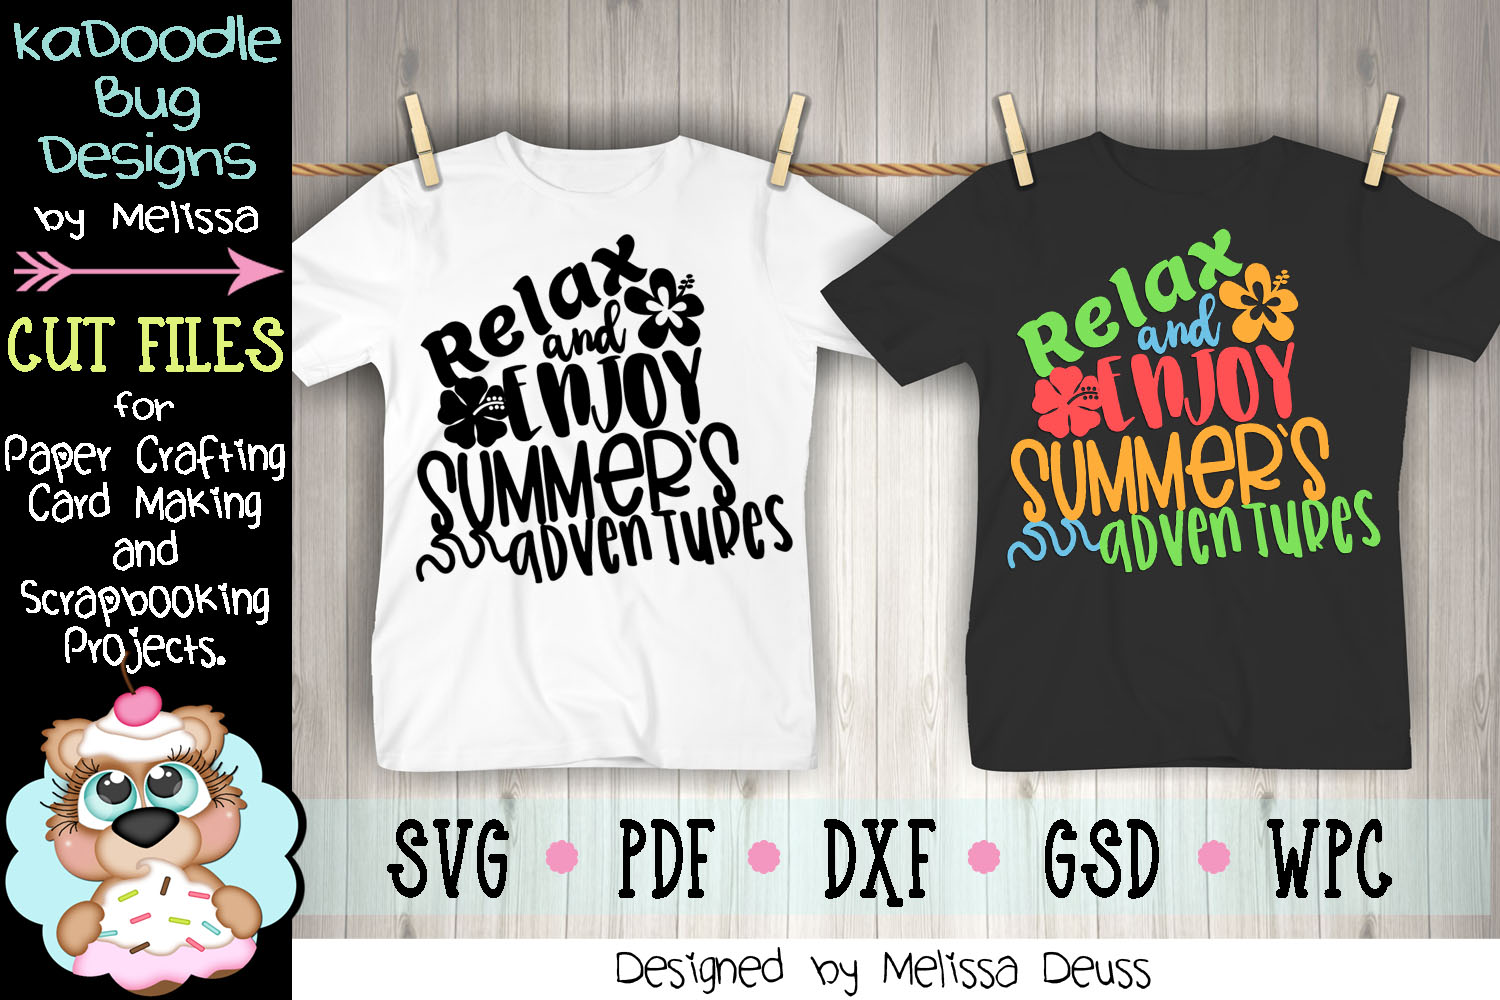 Relax and Enjoy Summer's Adventures Cut File - SVG PDF DXF example image 1